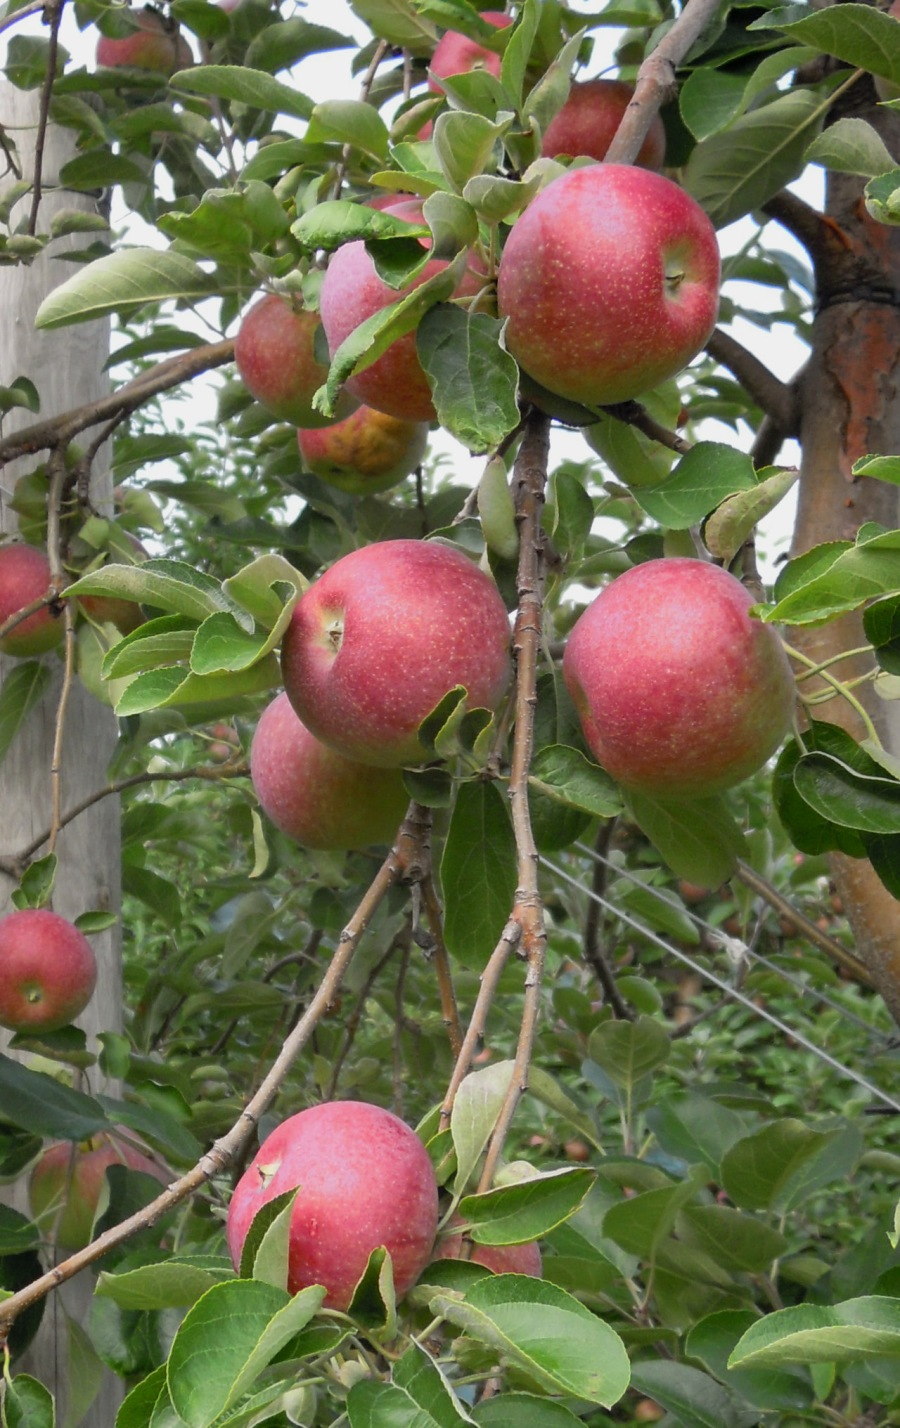 Red apples on a branch.